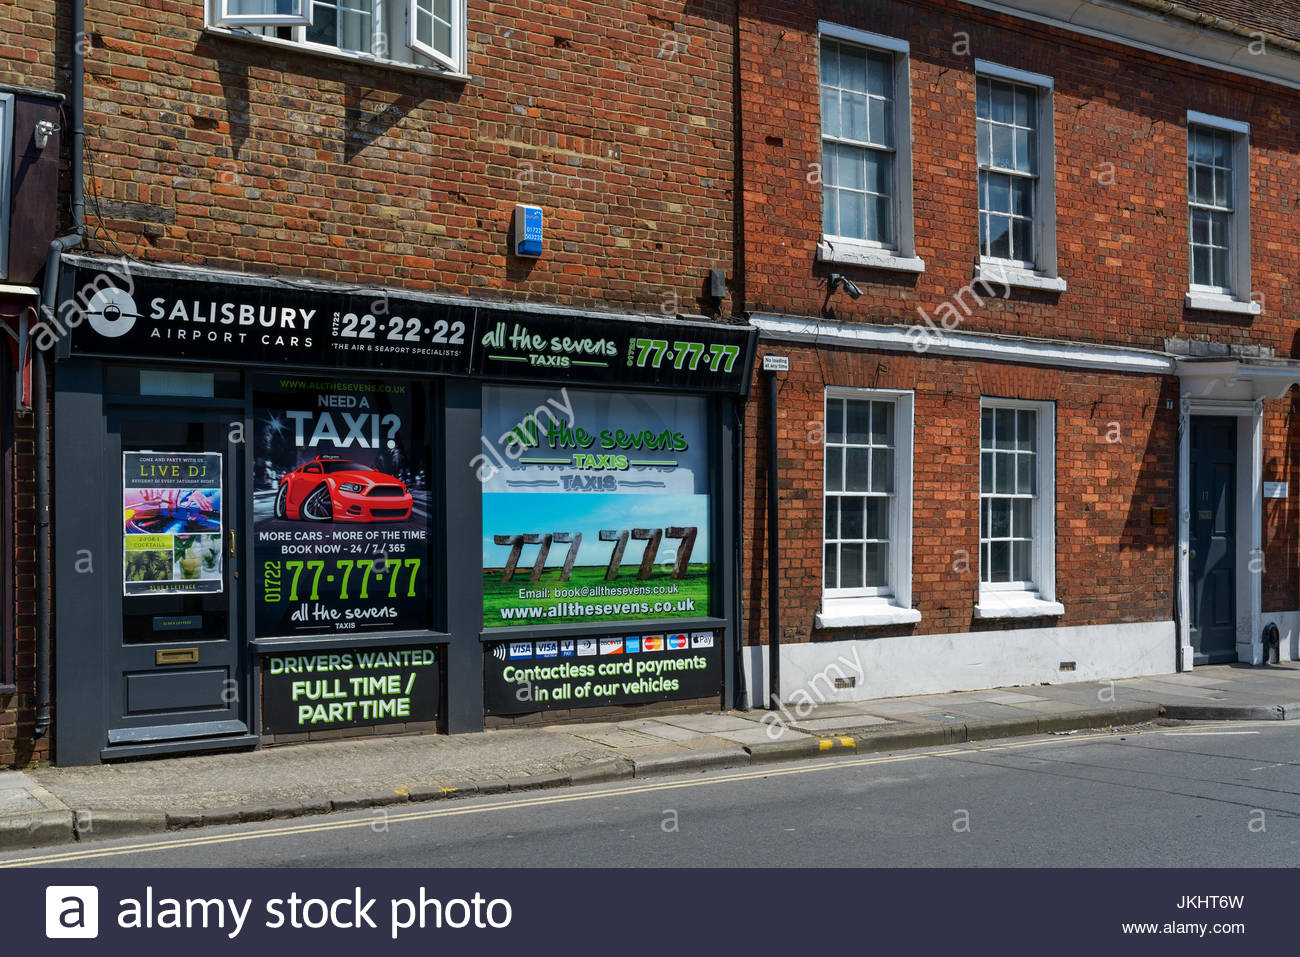 All the Sevens taxi office, Salisbury, Wiltshire, England UK Stock Photo